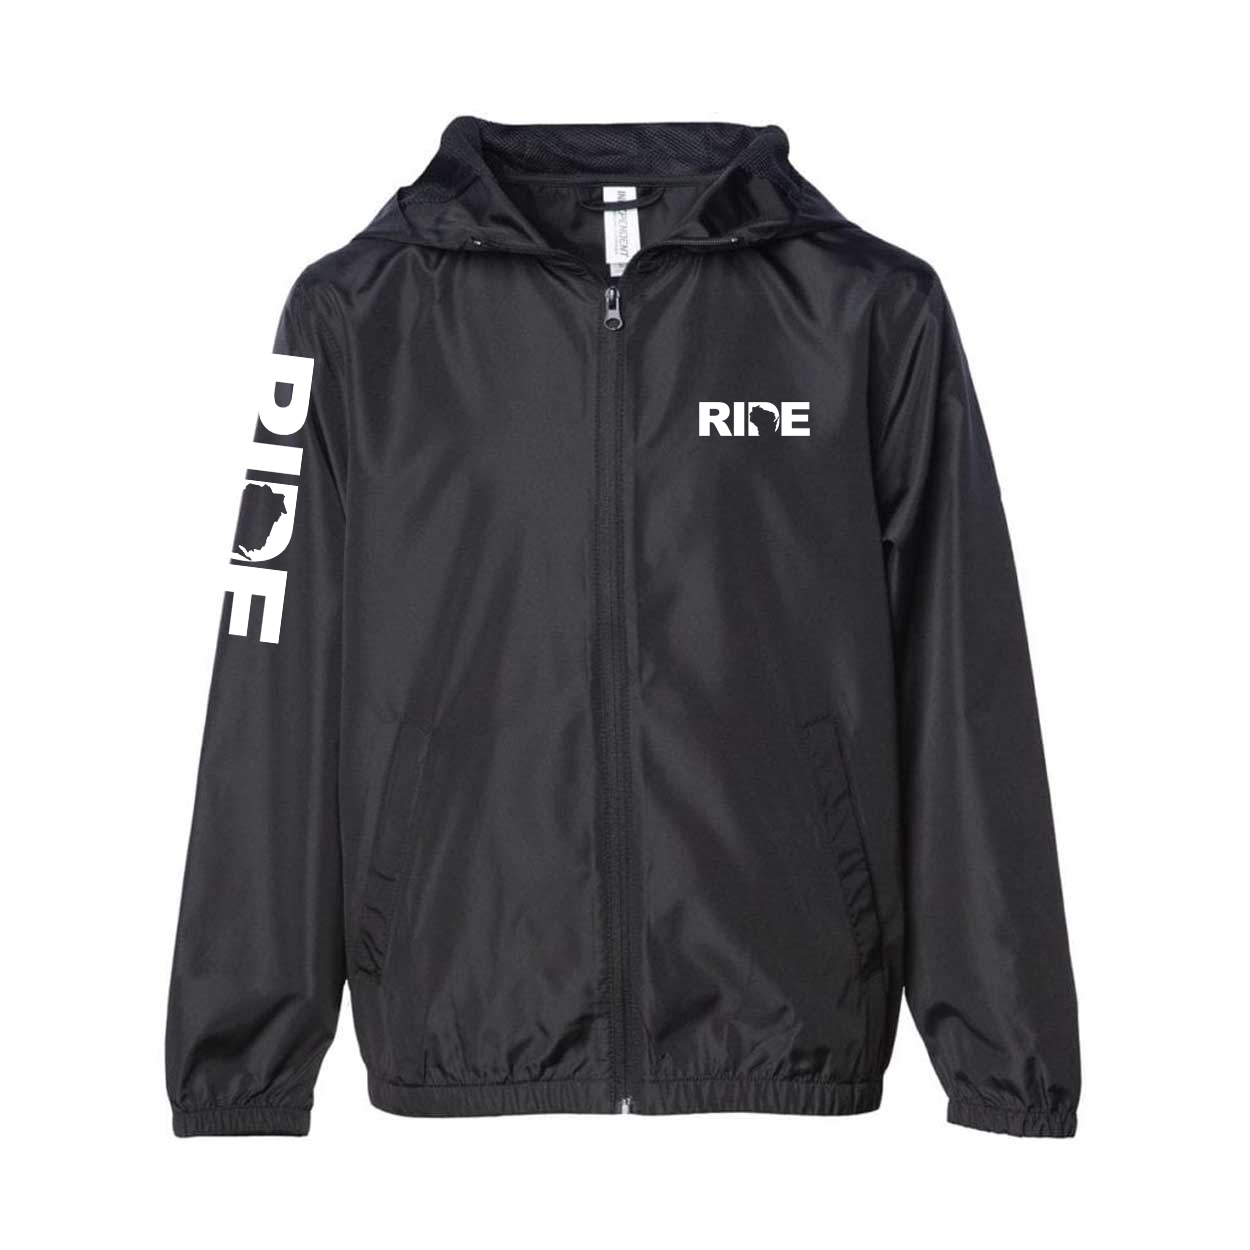 Ride Wisconsin Classic Youth Lightweight Windbreaker Black (White Logo)